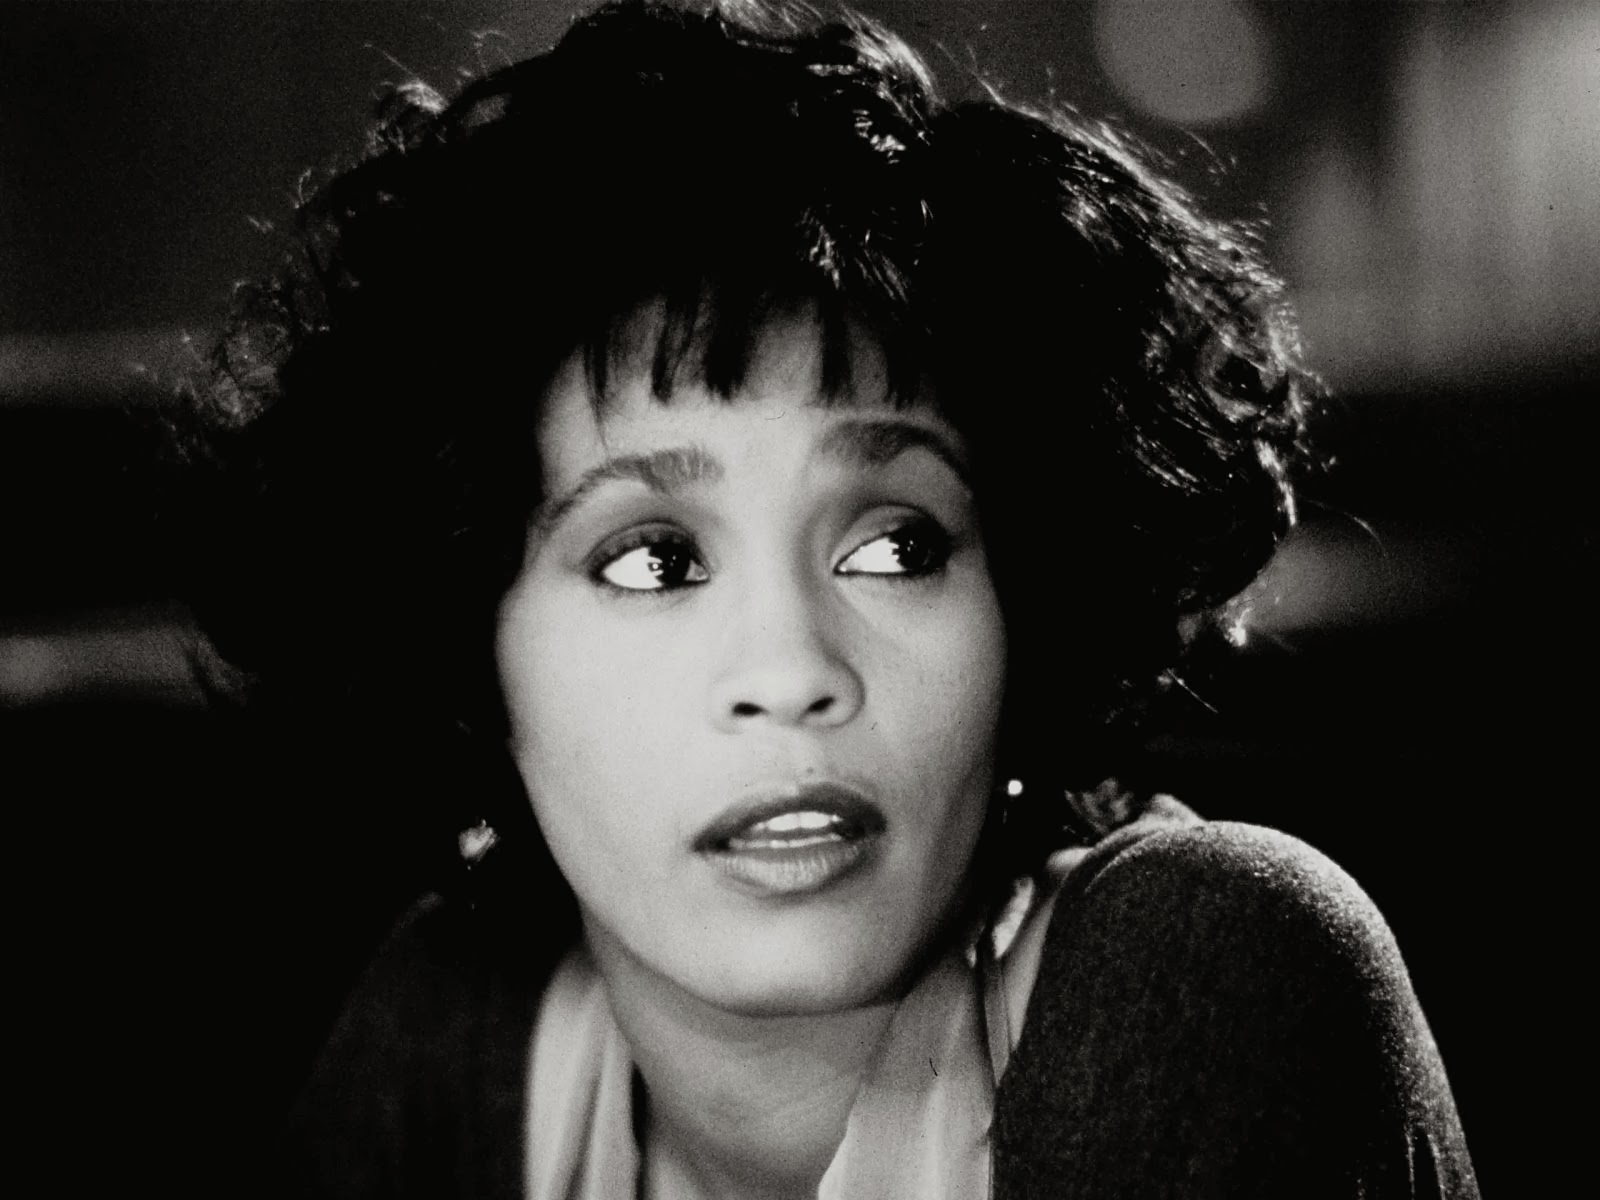 whitney catholic singles After her debut album she gave several hit singles like 'saving all my love for you', 'how will i know', 'you give good love' and many more.